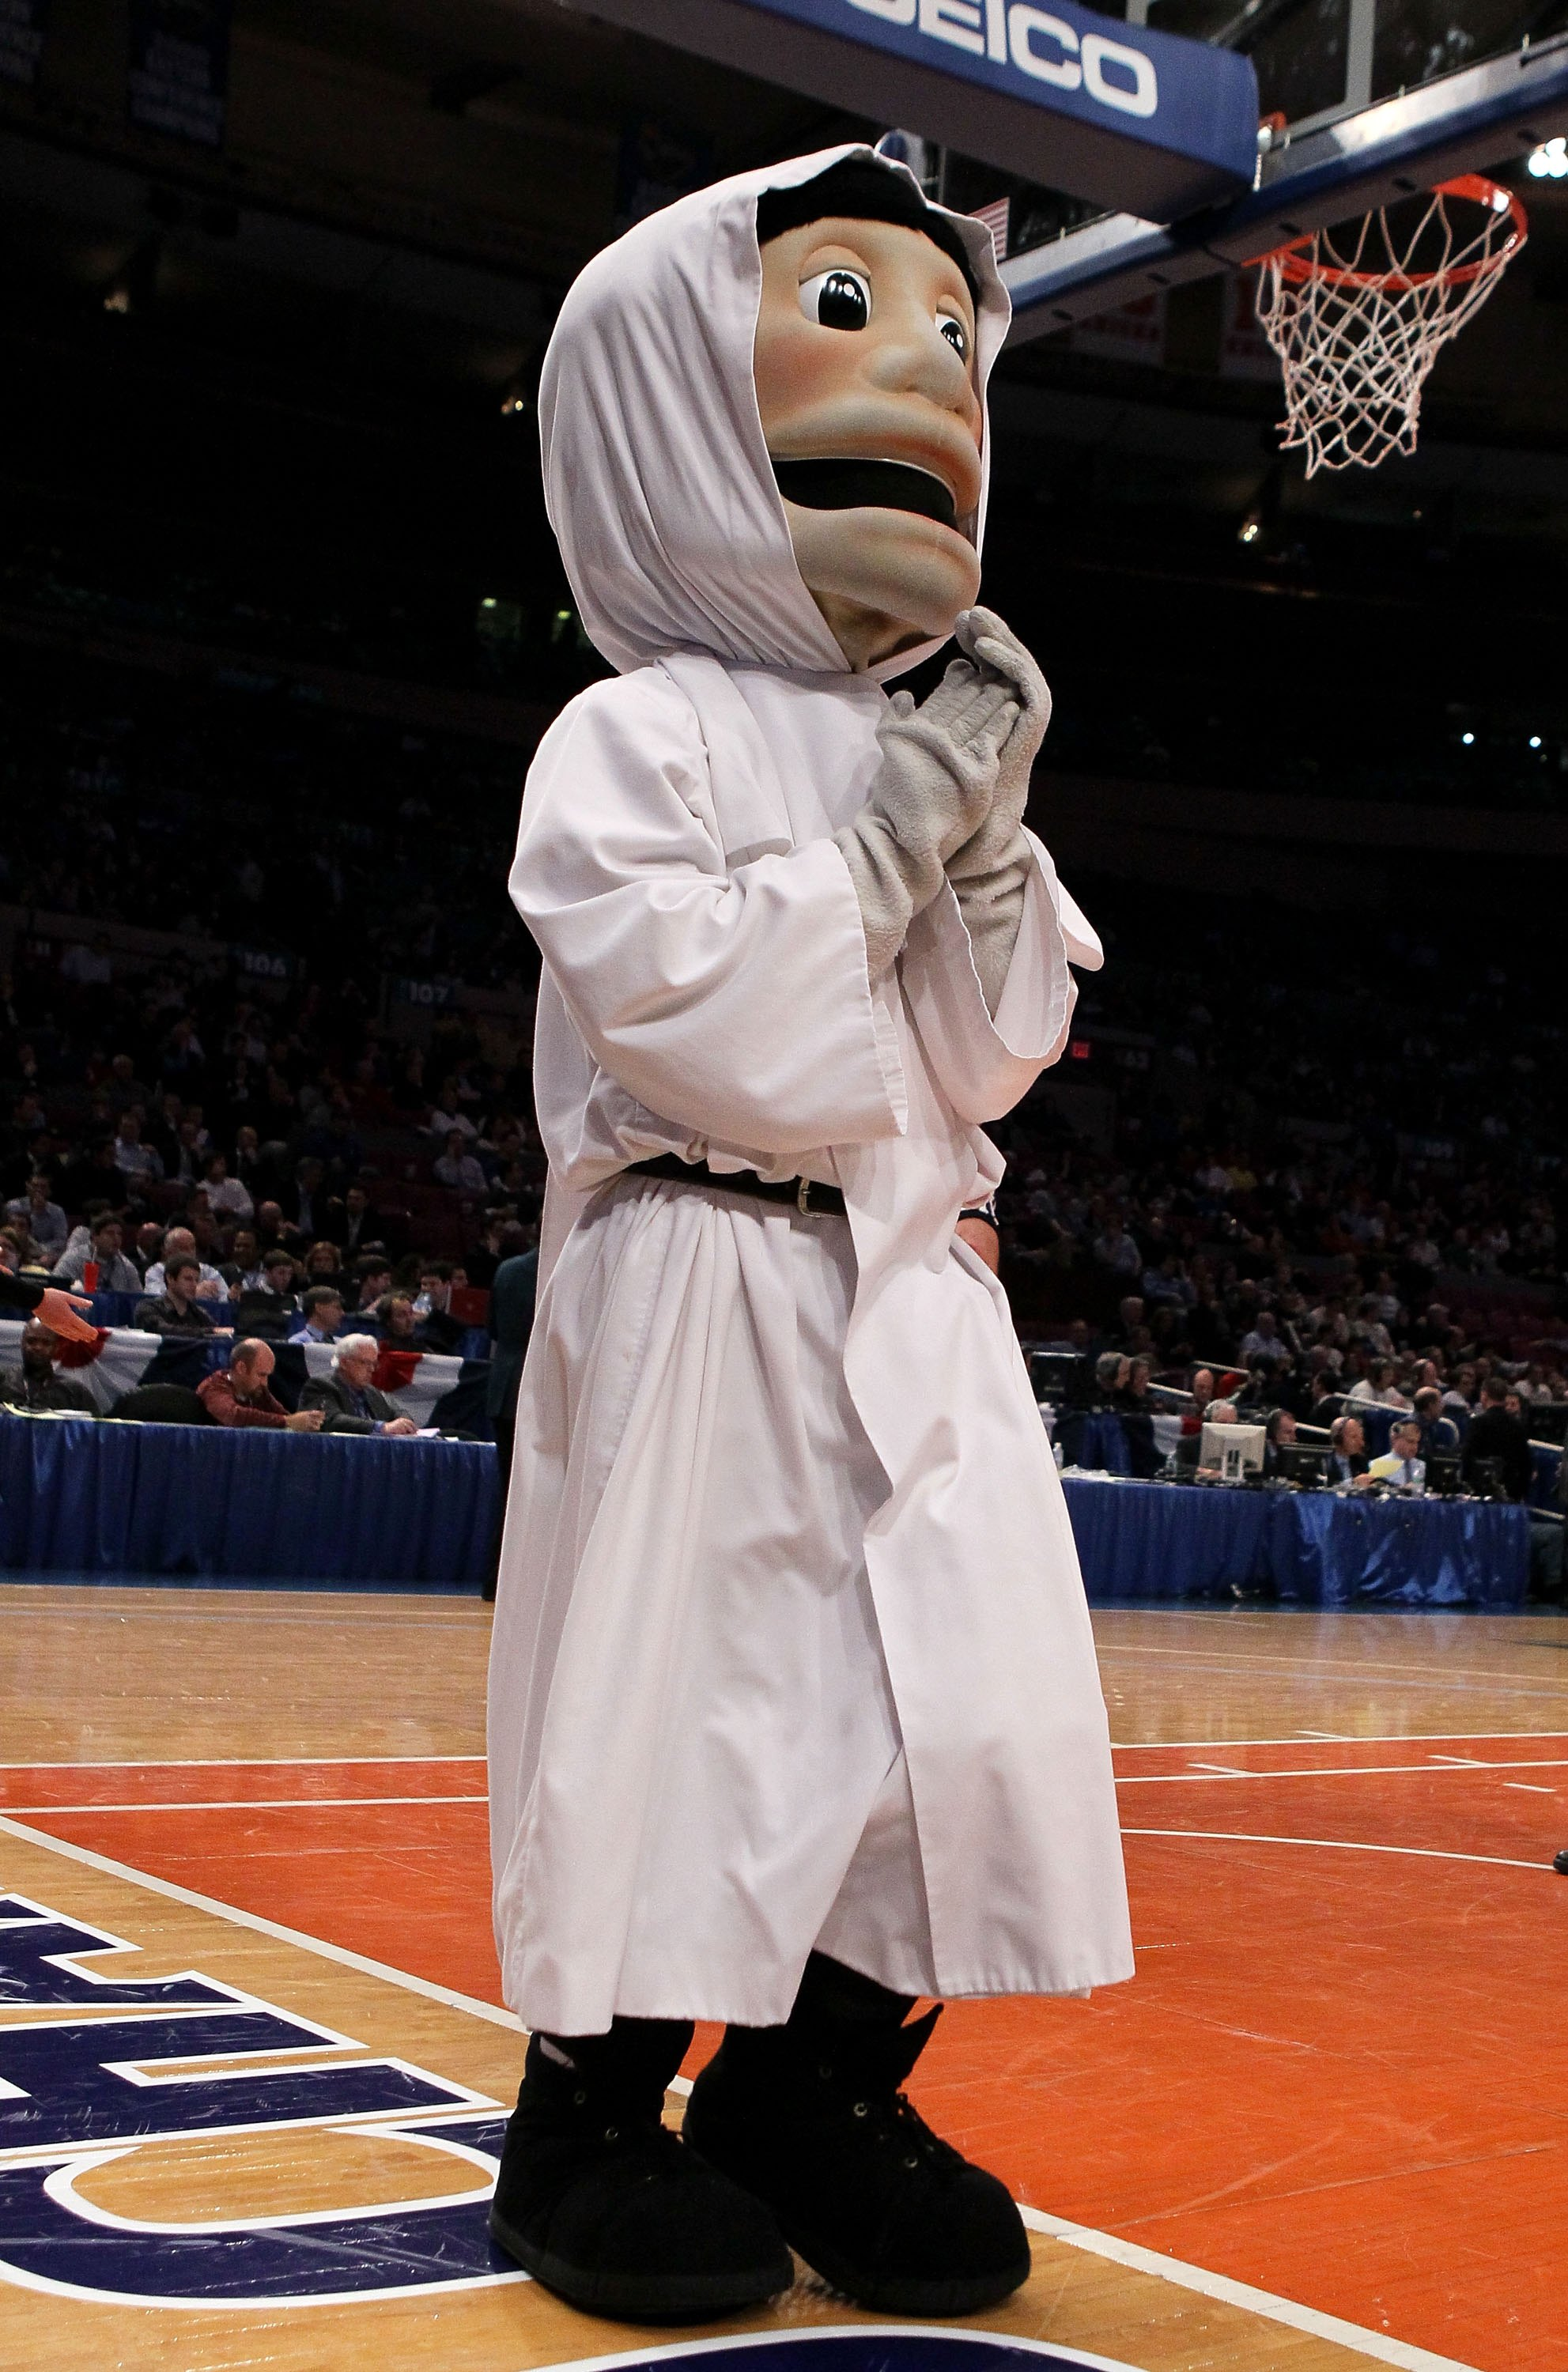 NEW YORK - MARCH 09: The Providence Friars mascot walks on the court against the Seton Hall Pirates during the first round game of the Big East Basketball Tournament at Madison Square Garden on March 9, 2010 in New York, New York.  (Photo by Jim McIsaac/G